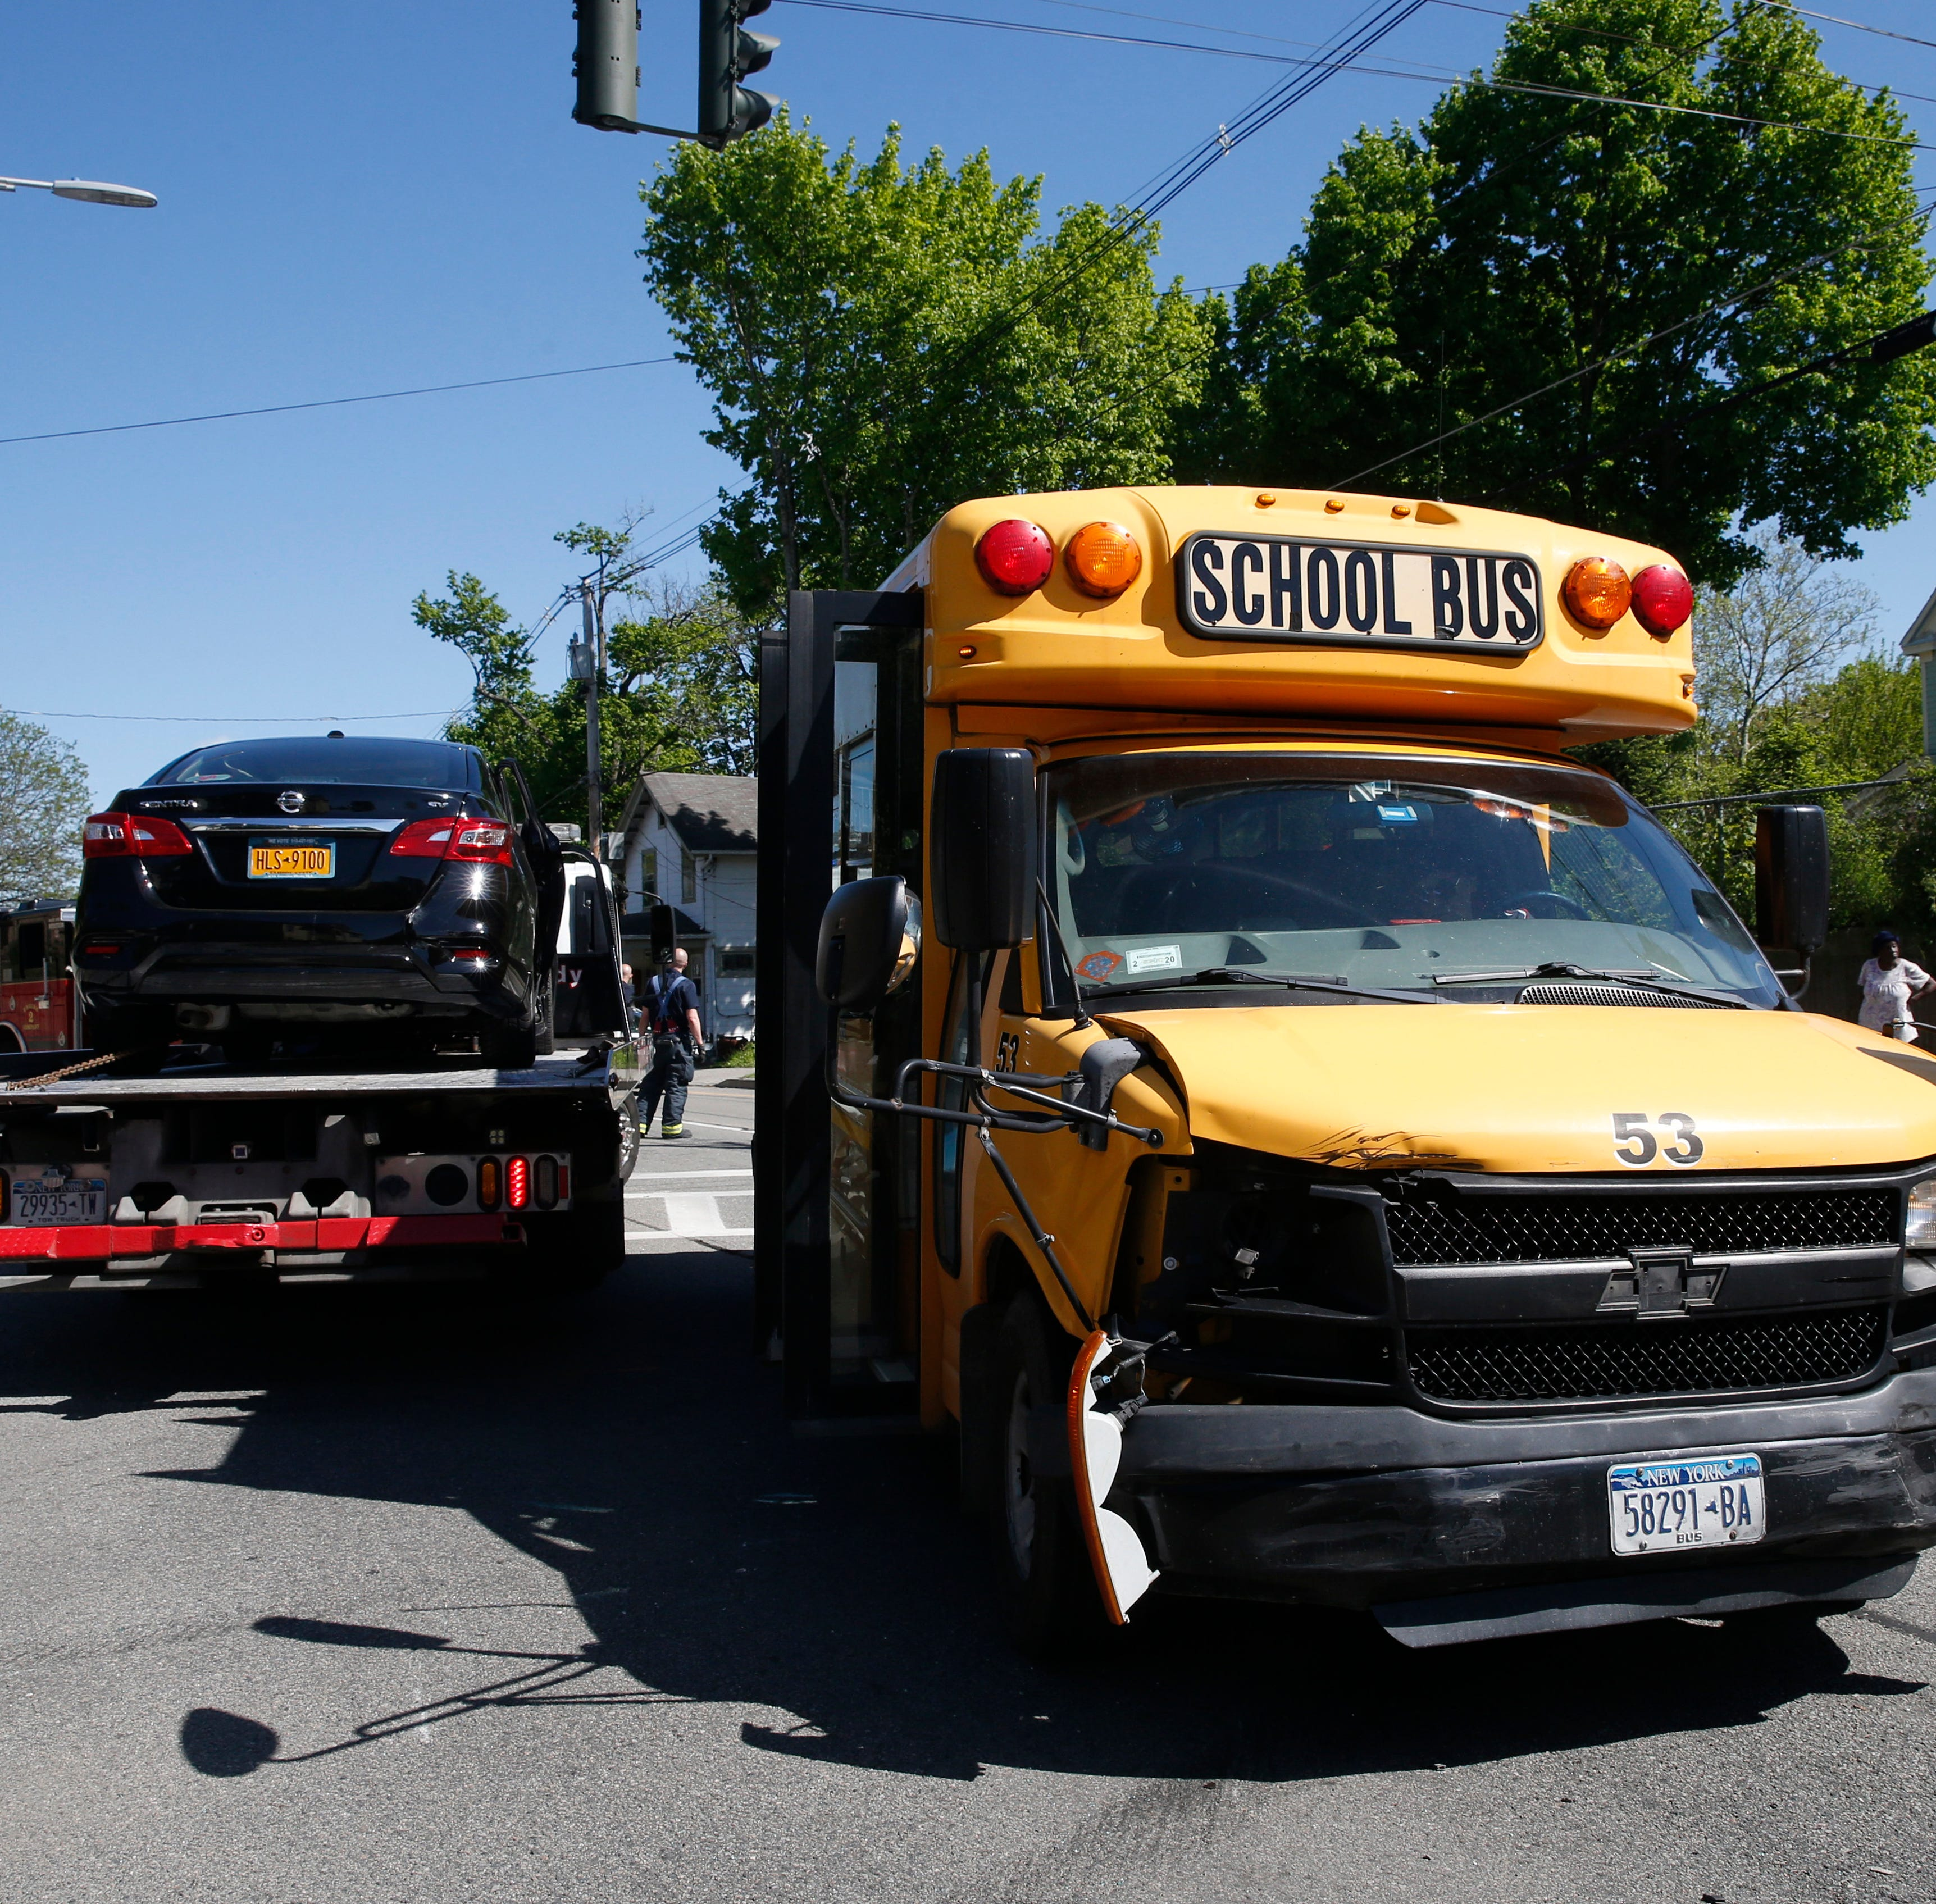 Crash involving school bus temporarily closes arterial in Poughkeepsie